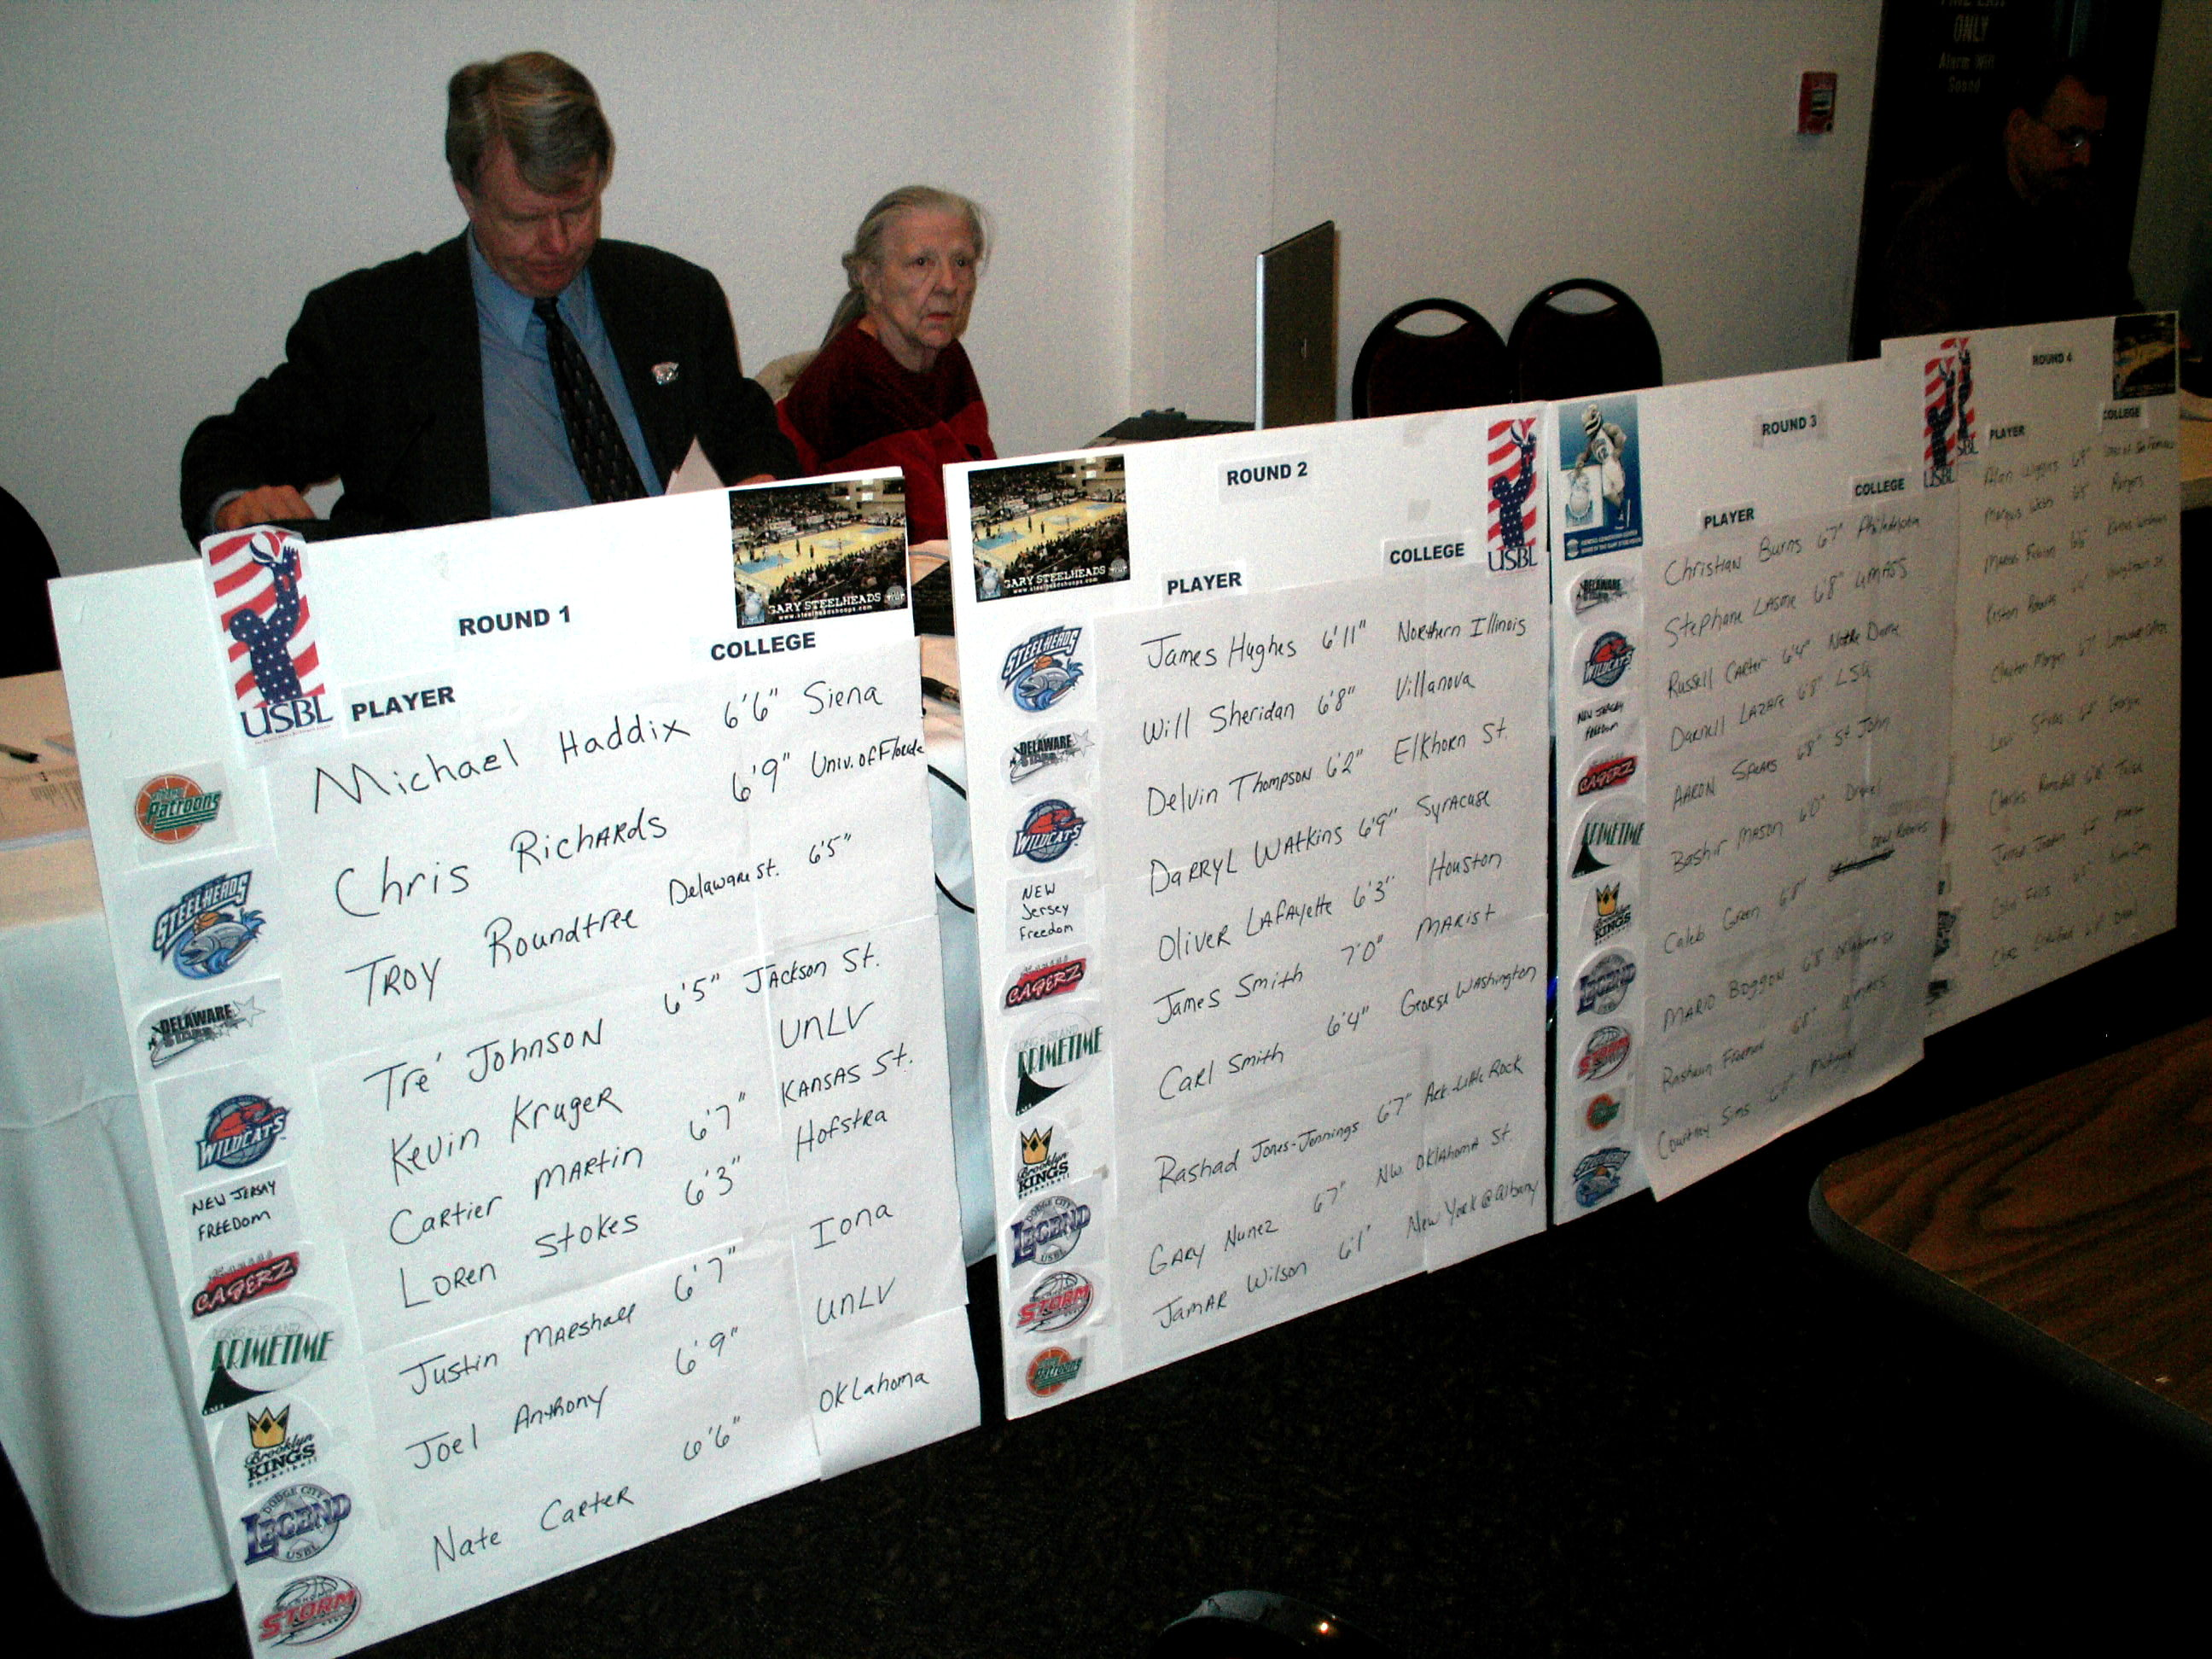 2007 USBL Draft choices